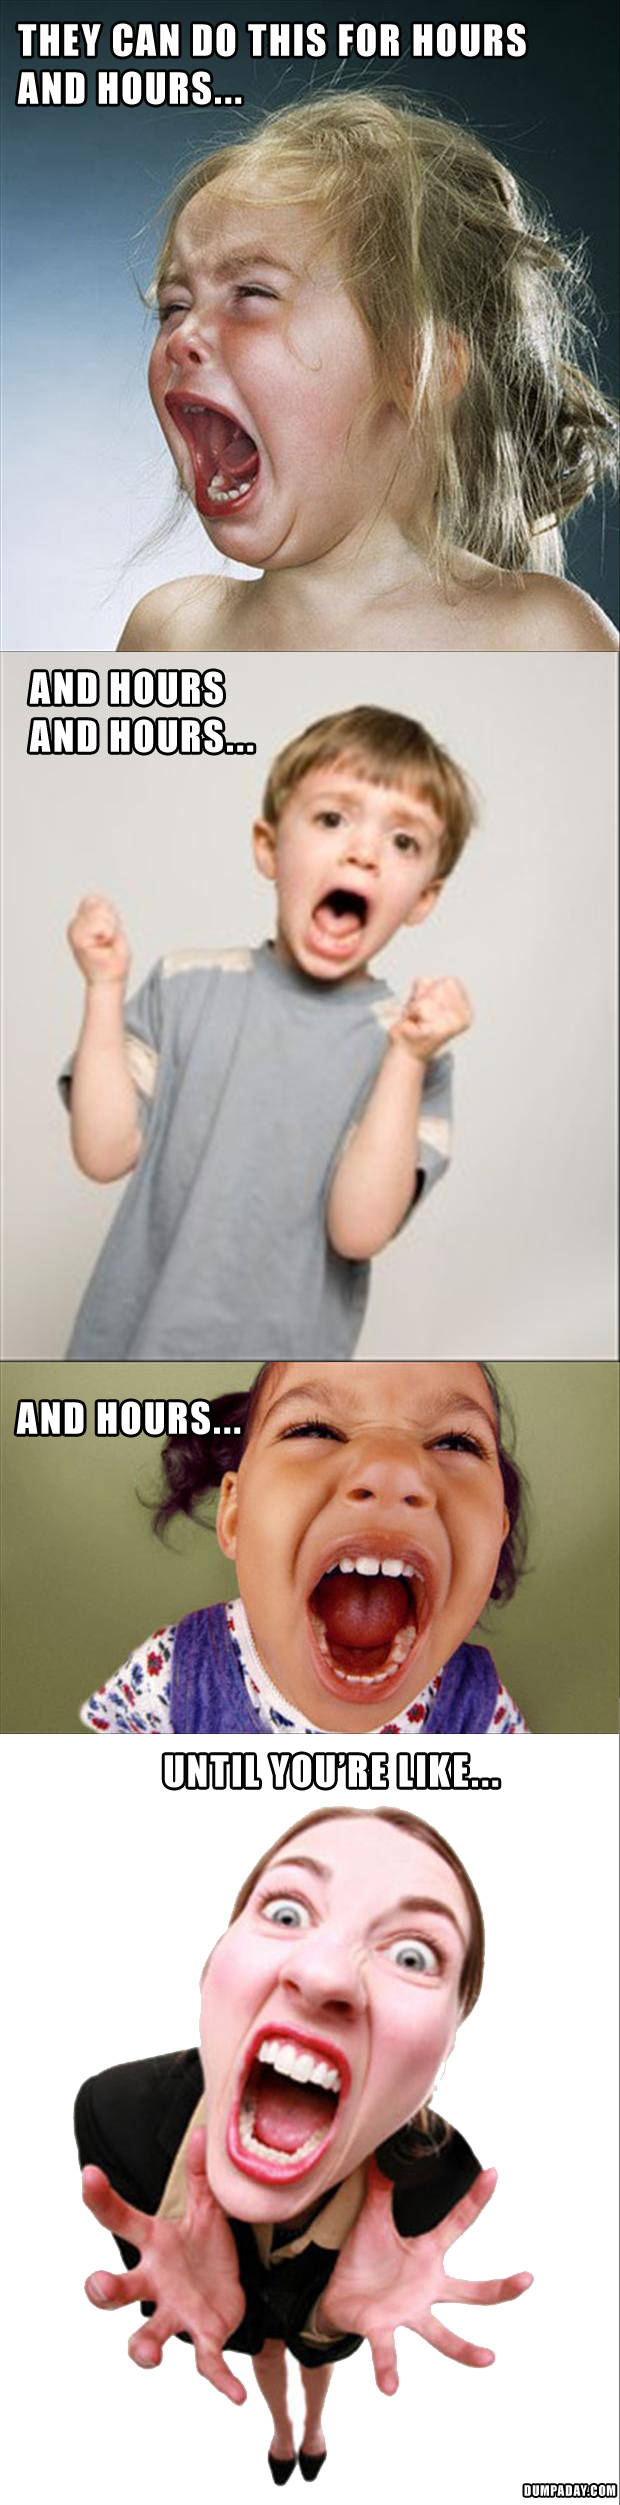 15 kids screaming, makes parents crazy, funny pictures